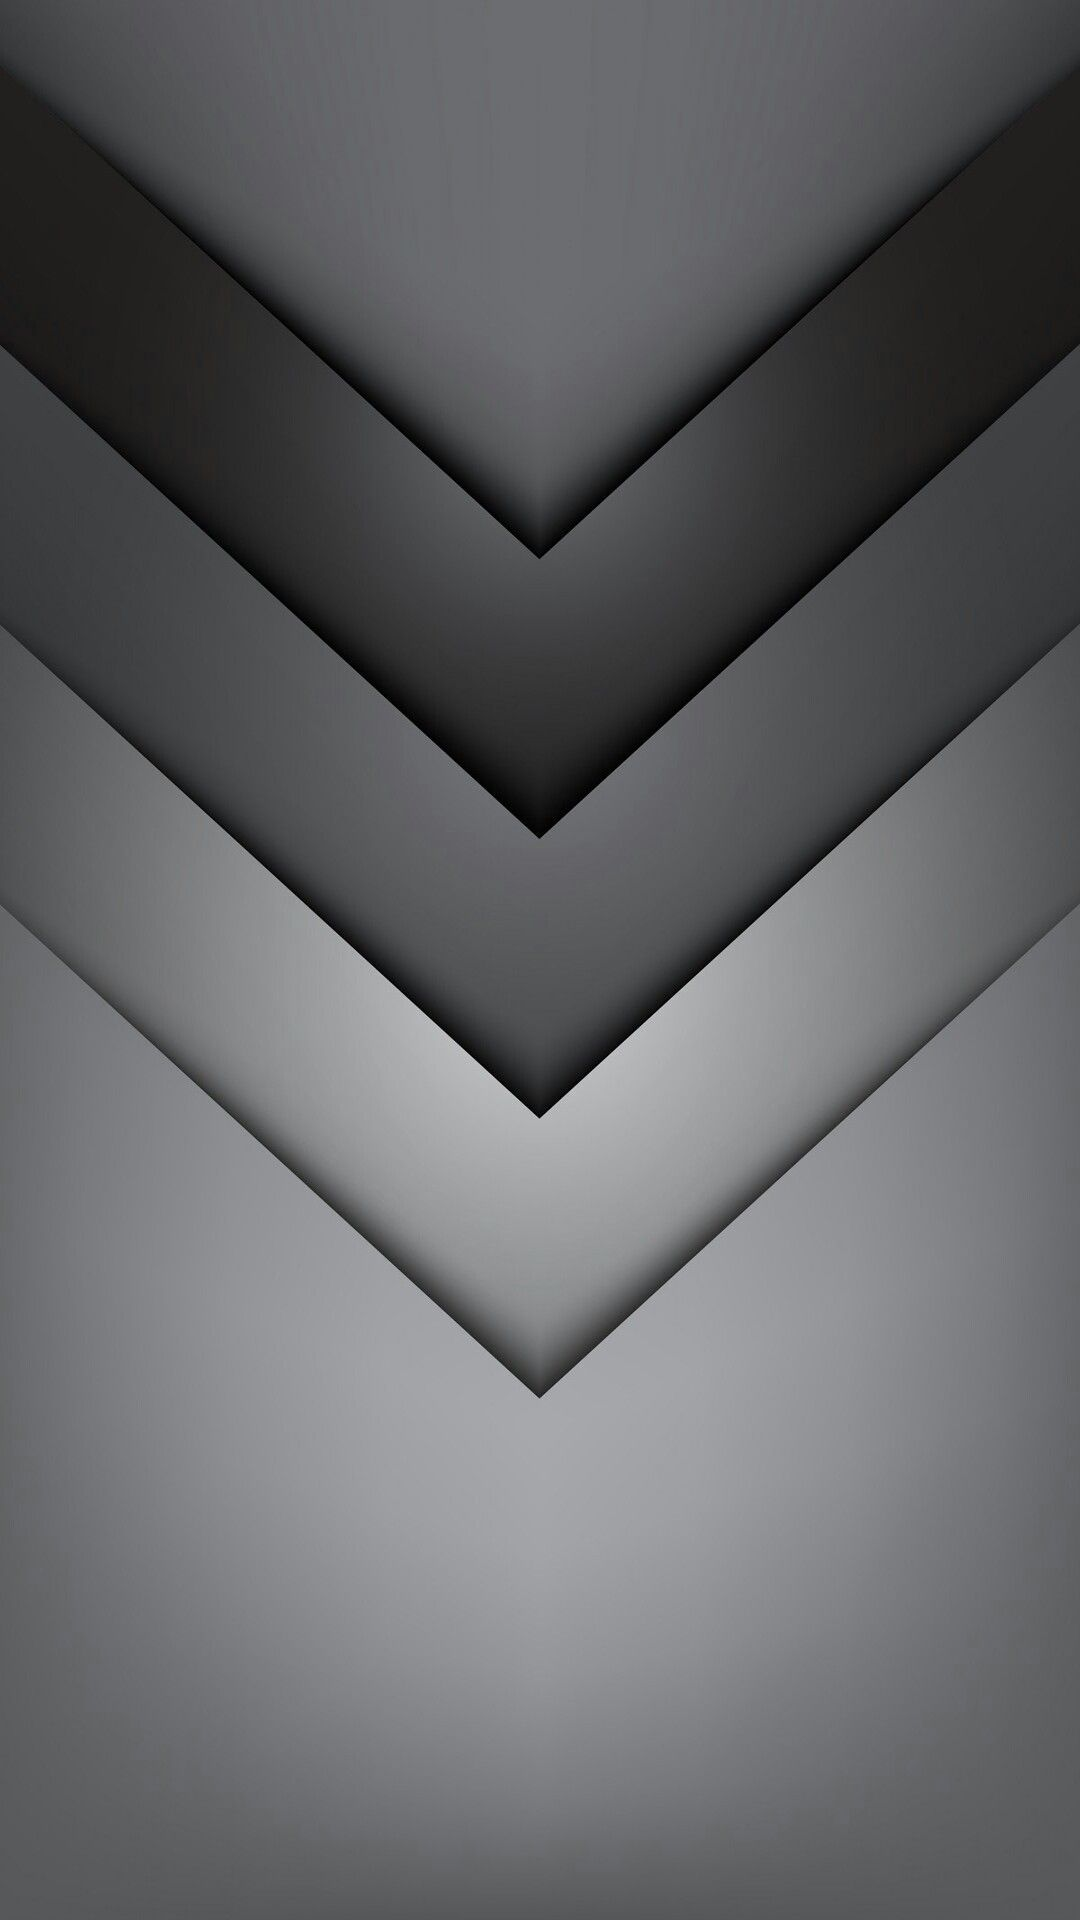 Geometric Gray Pattern Wallpaper Gold Wallpaper Phone Grey Wallpaper Mobile Android Wallpaper